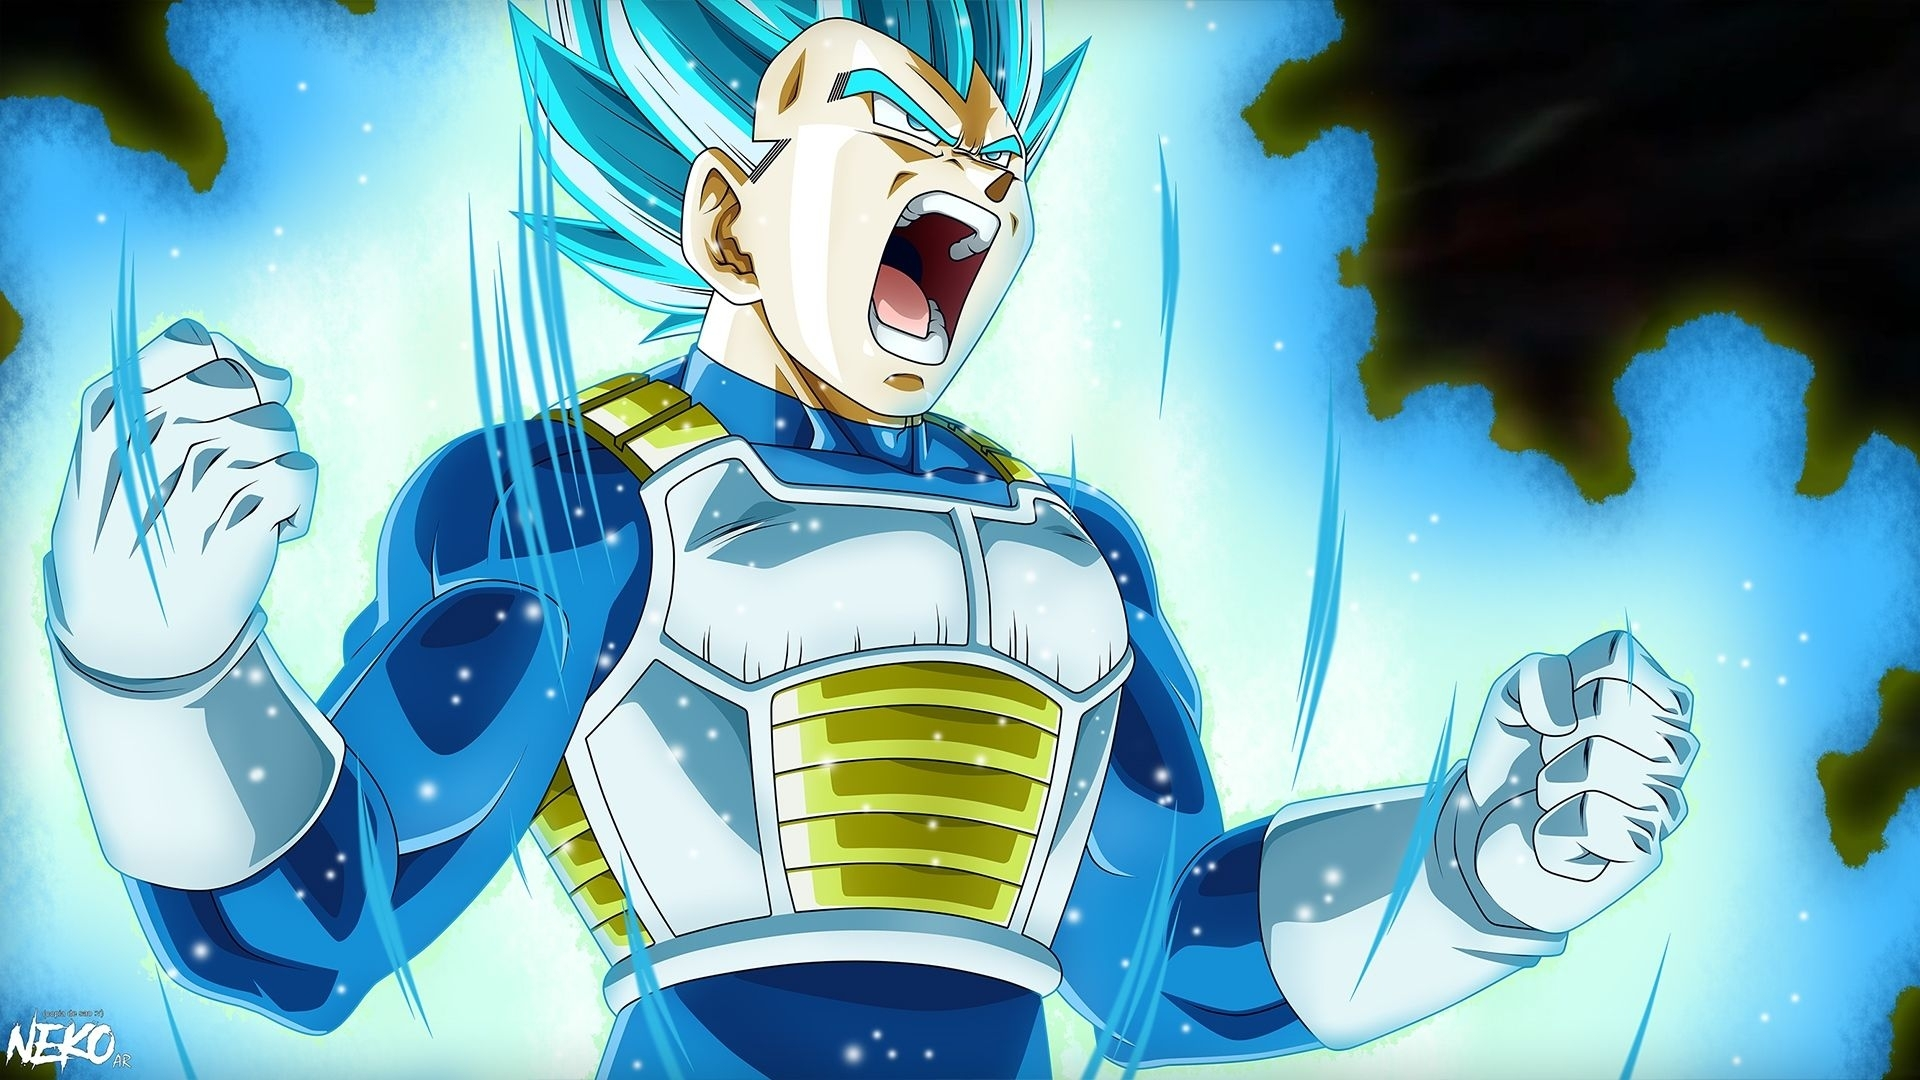 vegeta super saiyan blue 2 wallpapers - wallpaper cave